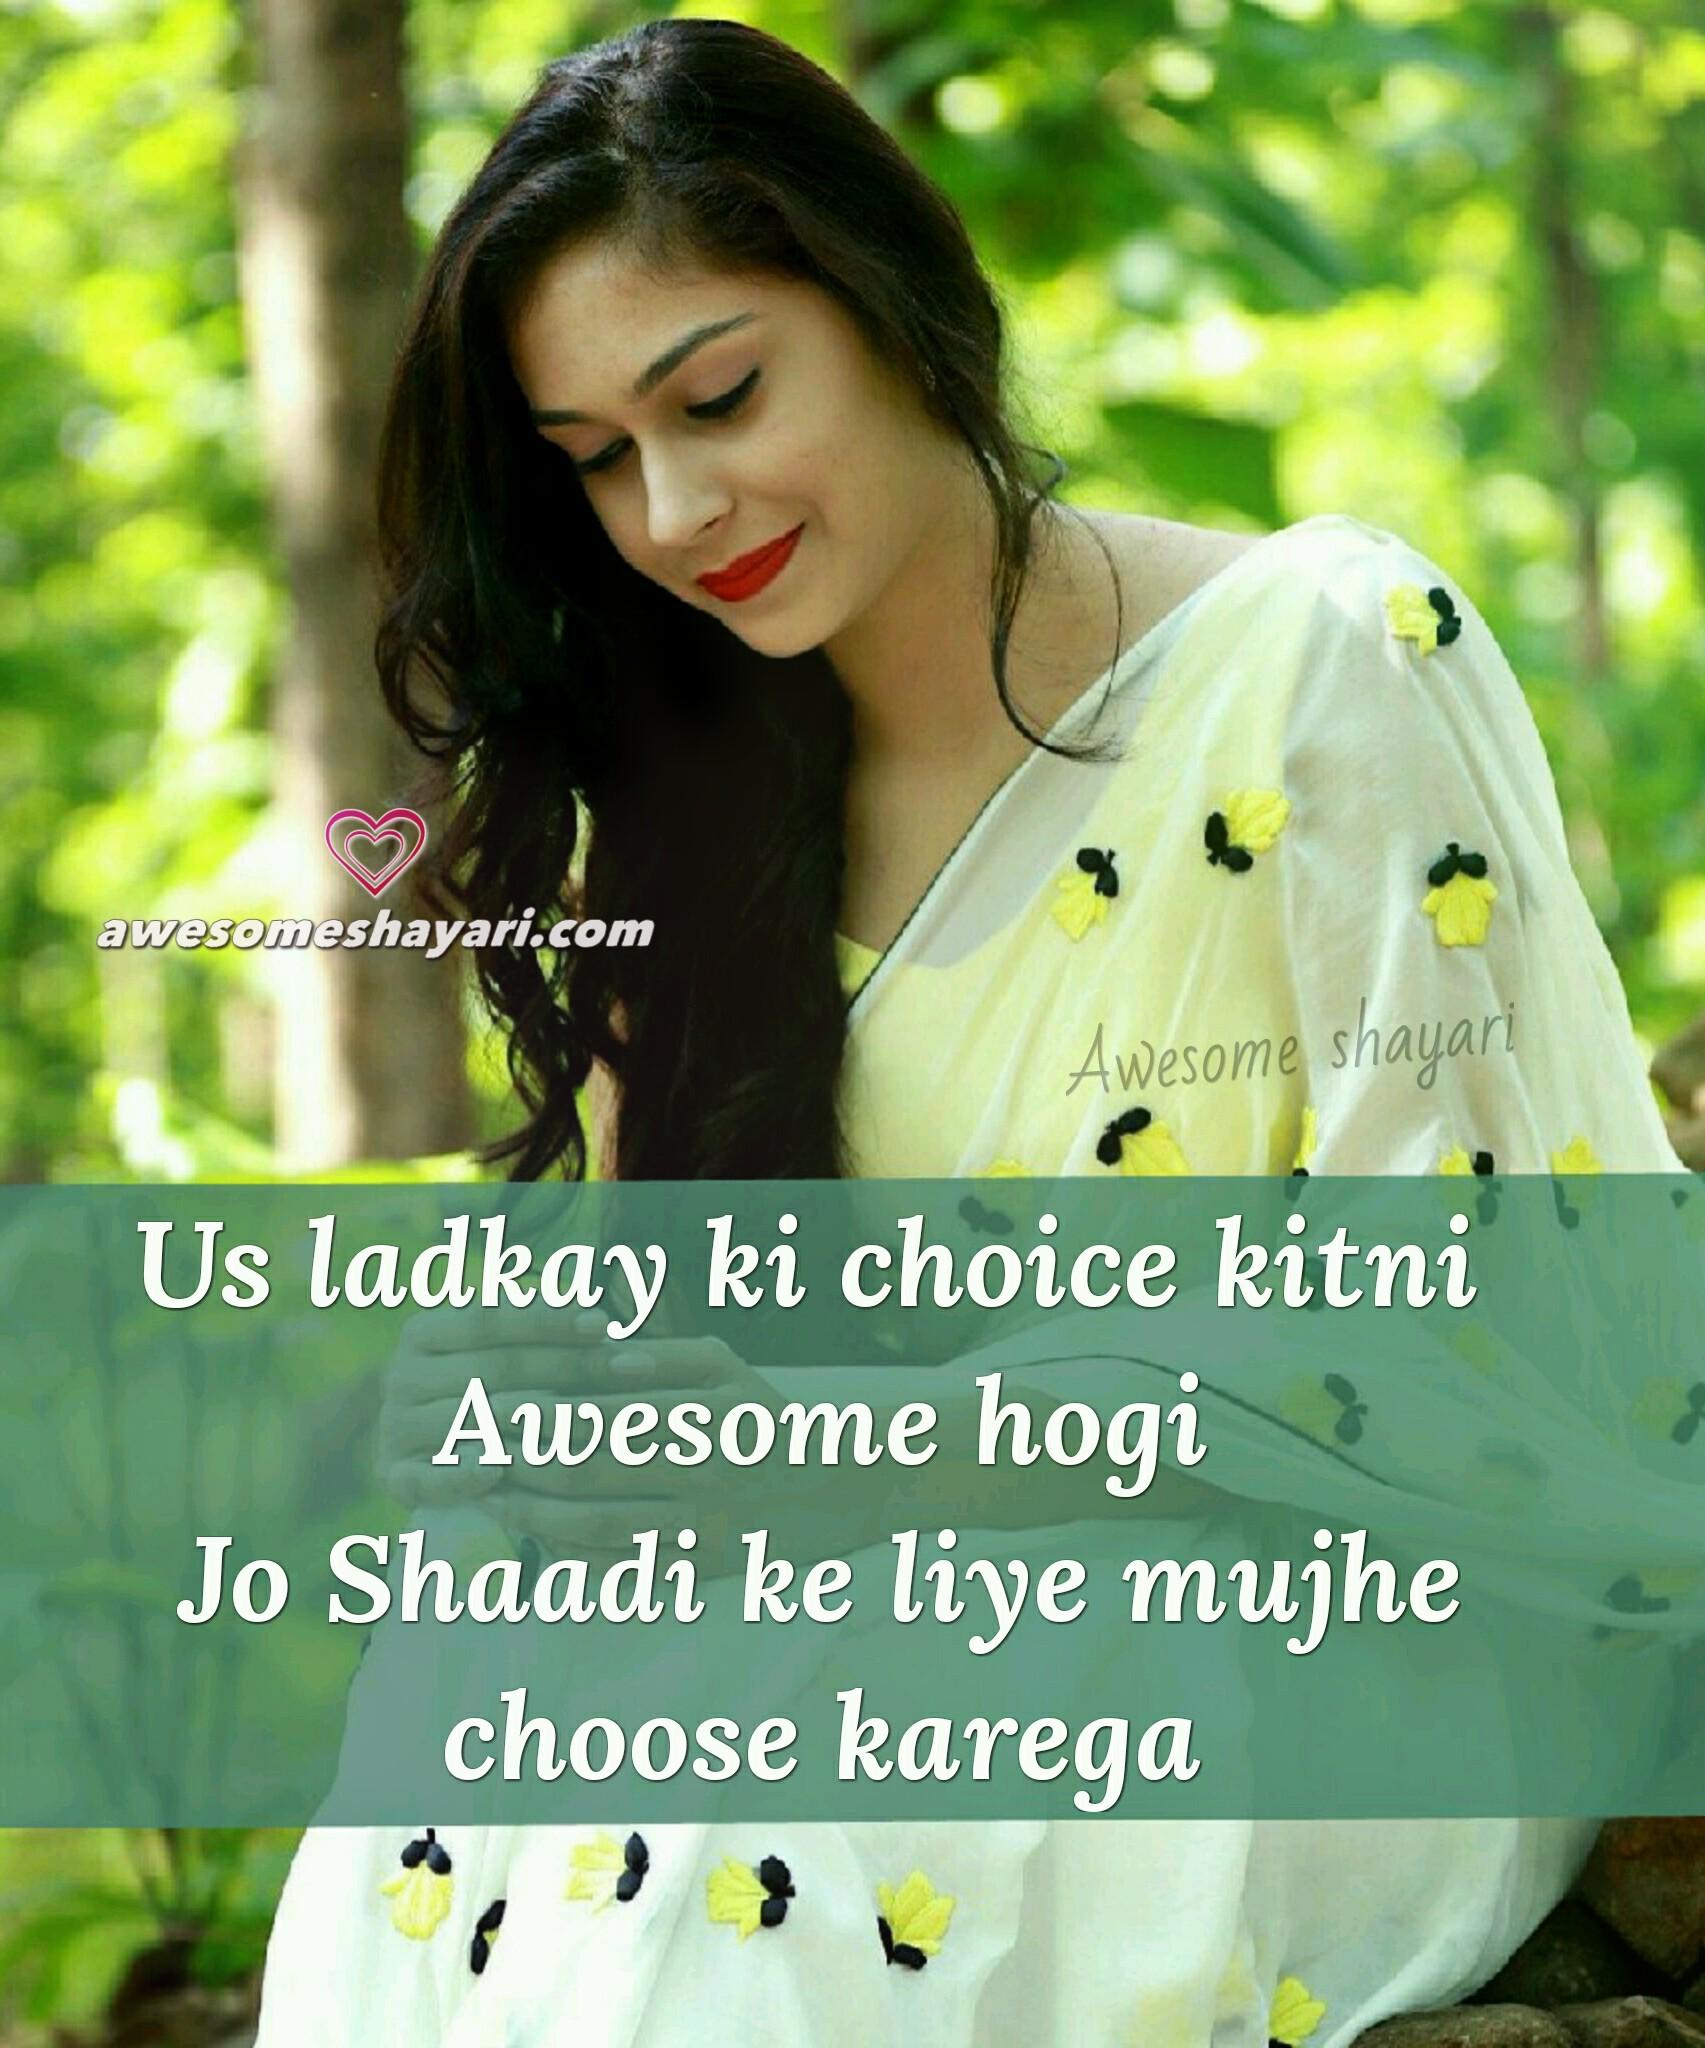 awesome shayari dp girls